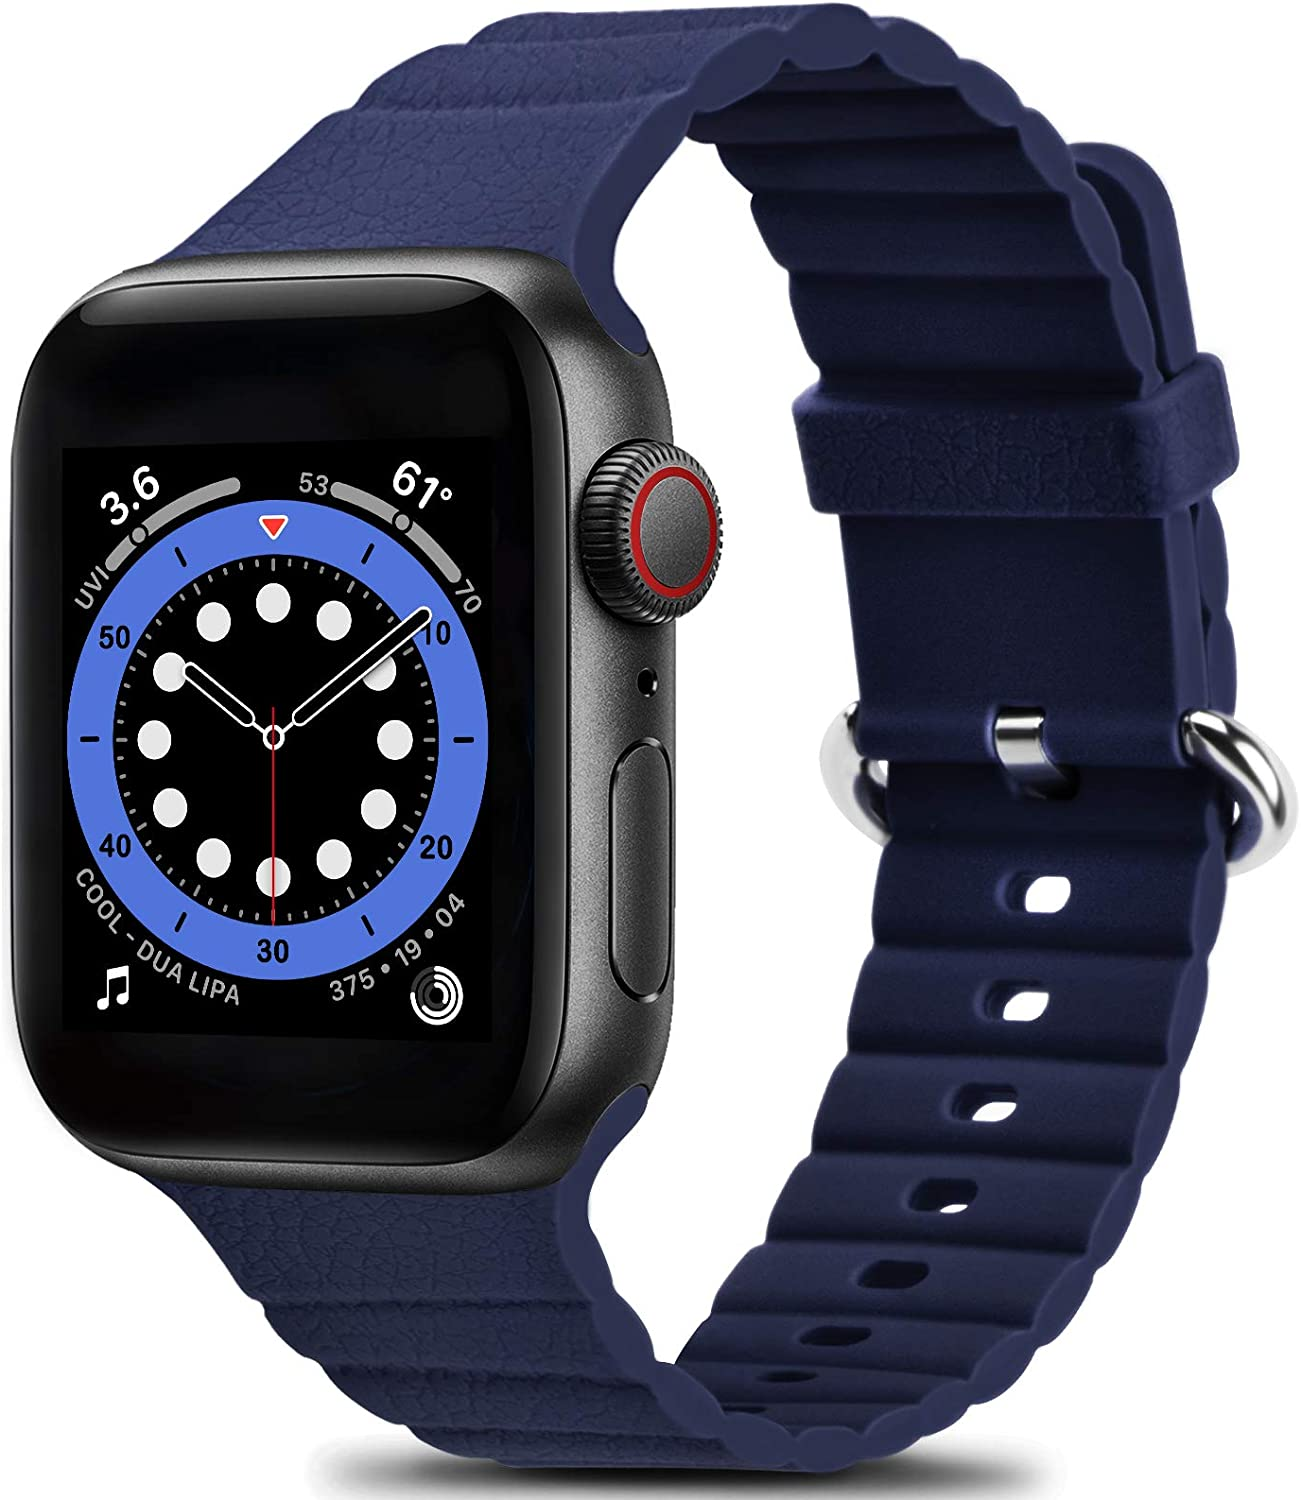 Sport Band Compatible with Apple Watch Bands 44mm 42mm 40mm 38mm for Men Women - Enhanced Adjustable Wavy Design Silicone Replacement Wristbands Straps for iWatch Series SE 6 5 4 3 2 1